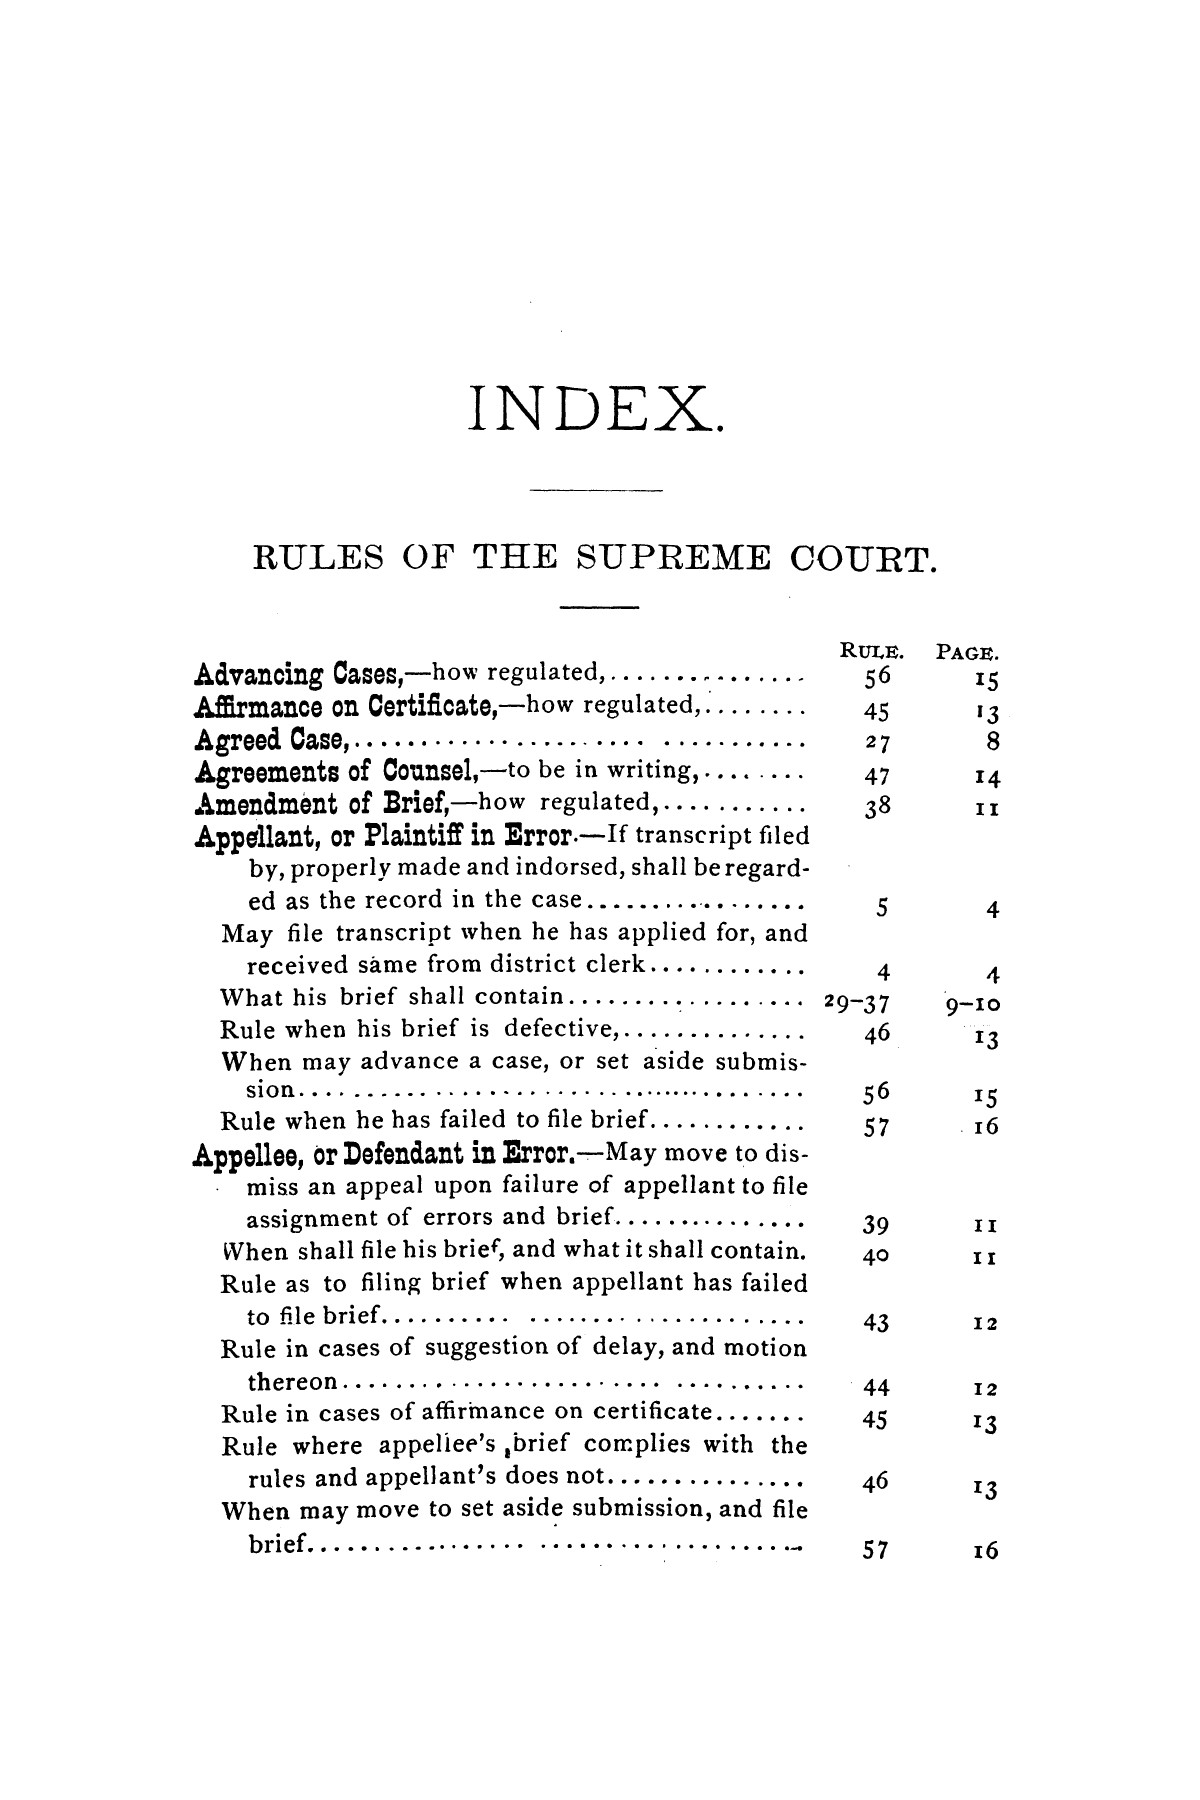 Rules for the courts of Texas: adopted by order of the Supreme Court at Tyler on the first day of December, A.D. 1877: together with amendments thereto at various times up to the close of the Austin term, A.D. 1890                                                                                                      [Sequence #]: 53 of 64